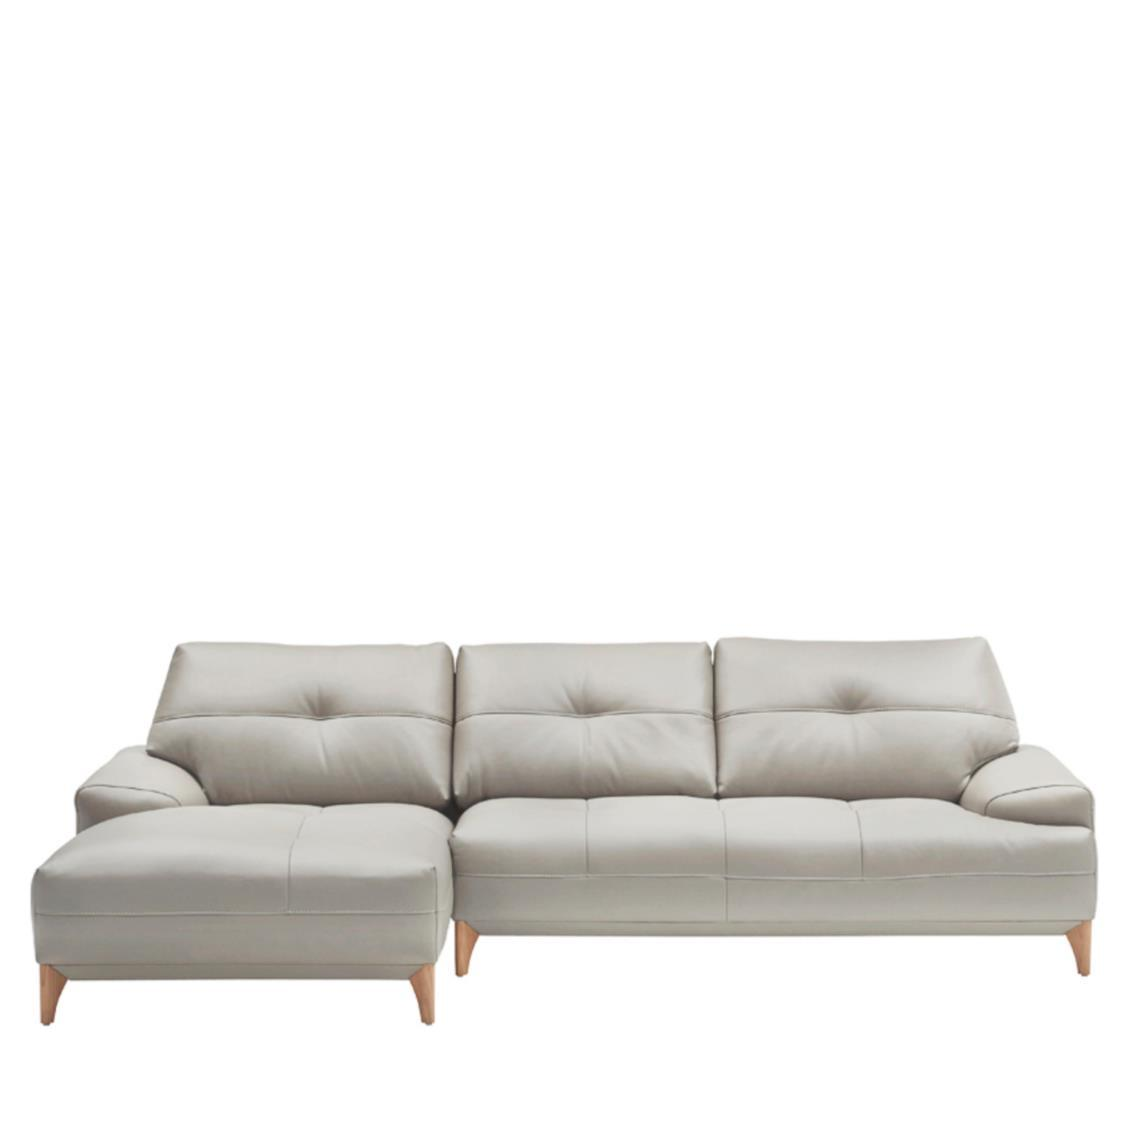 Boston Leather Couch L L391C Cloud